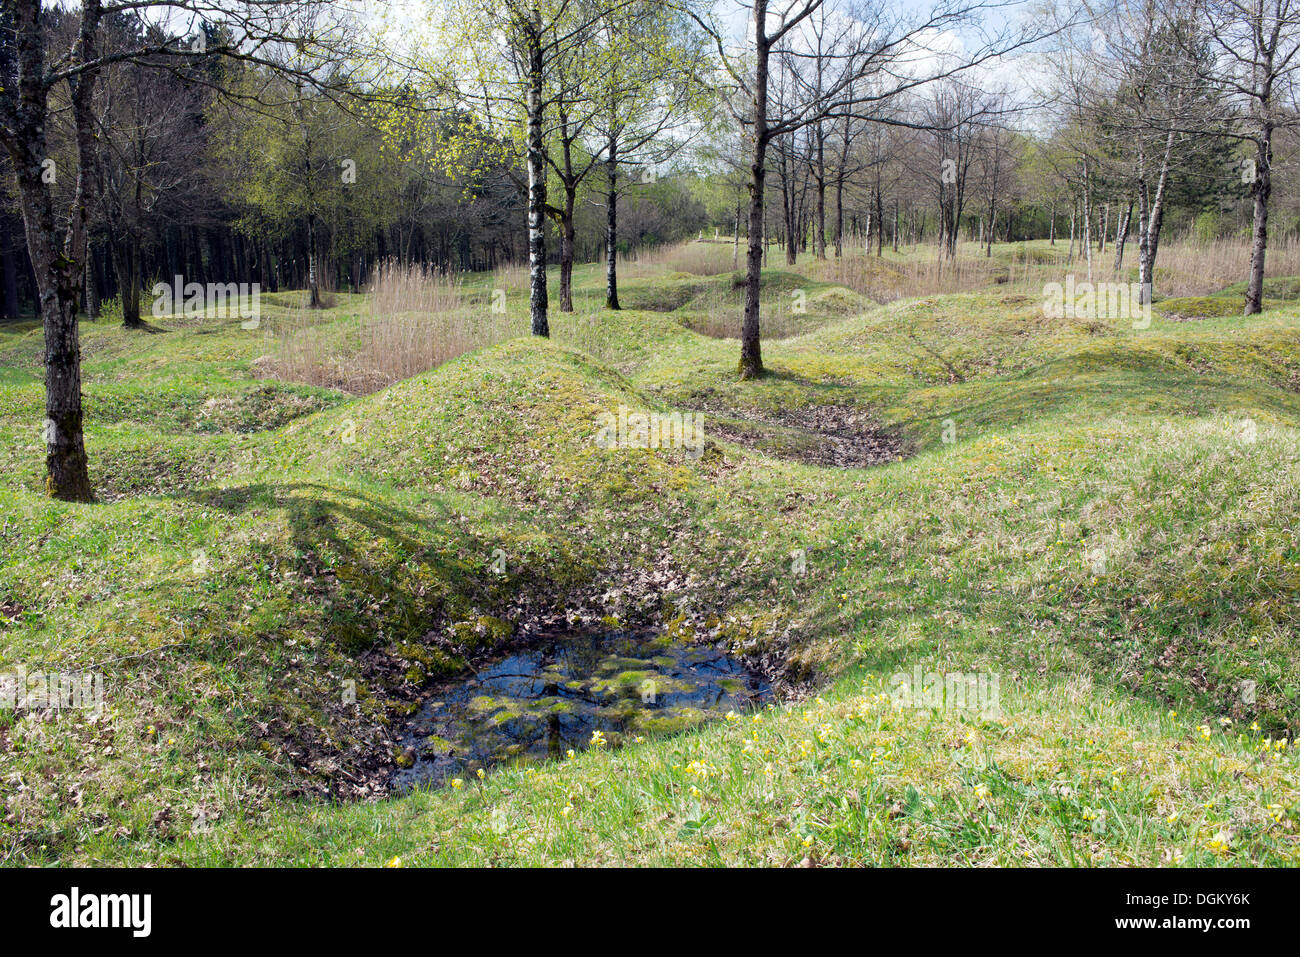 Bomb craters in the grounds, memorial for the Battle of Verdun, First World War, Verdun, Lorraine, France, Europe - Stock Image